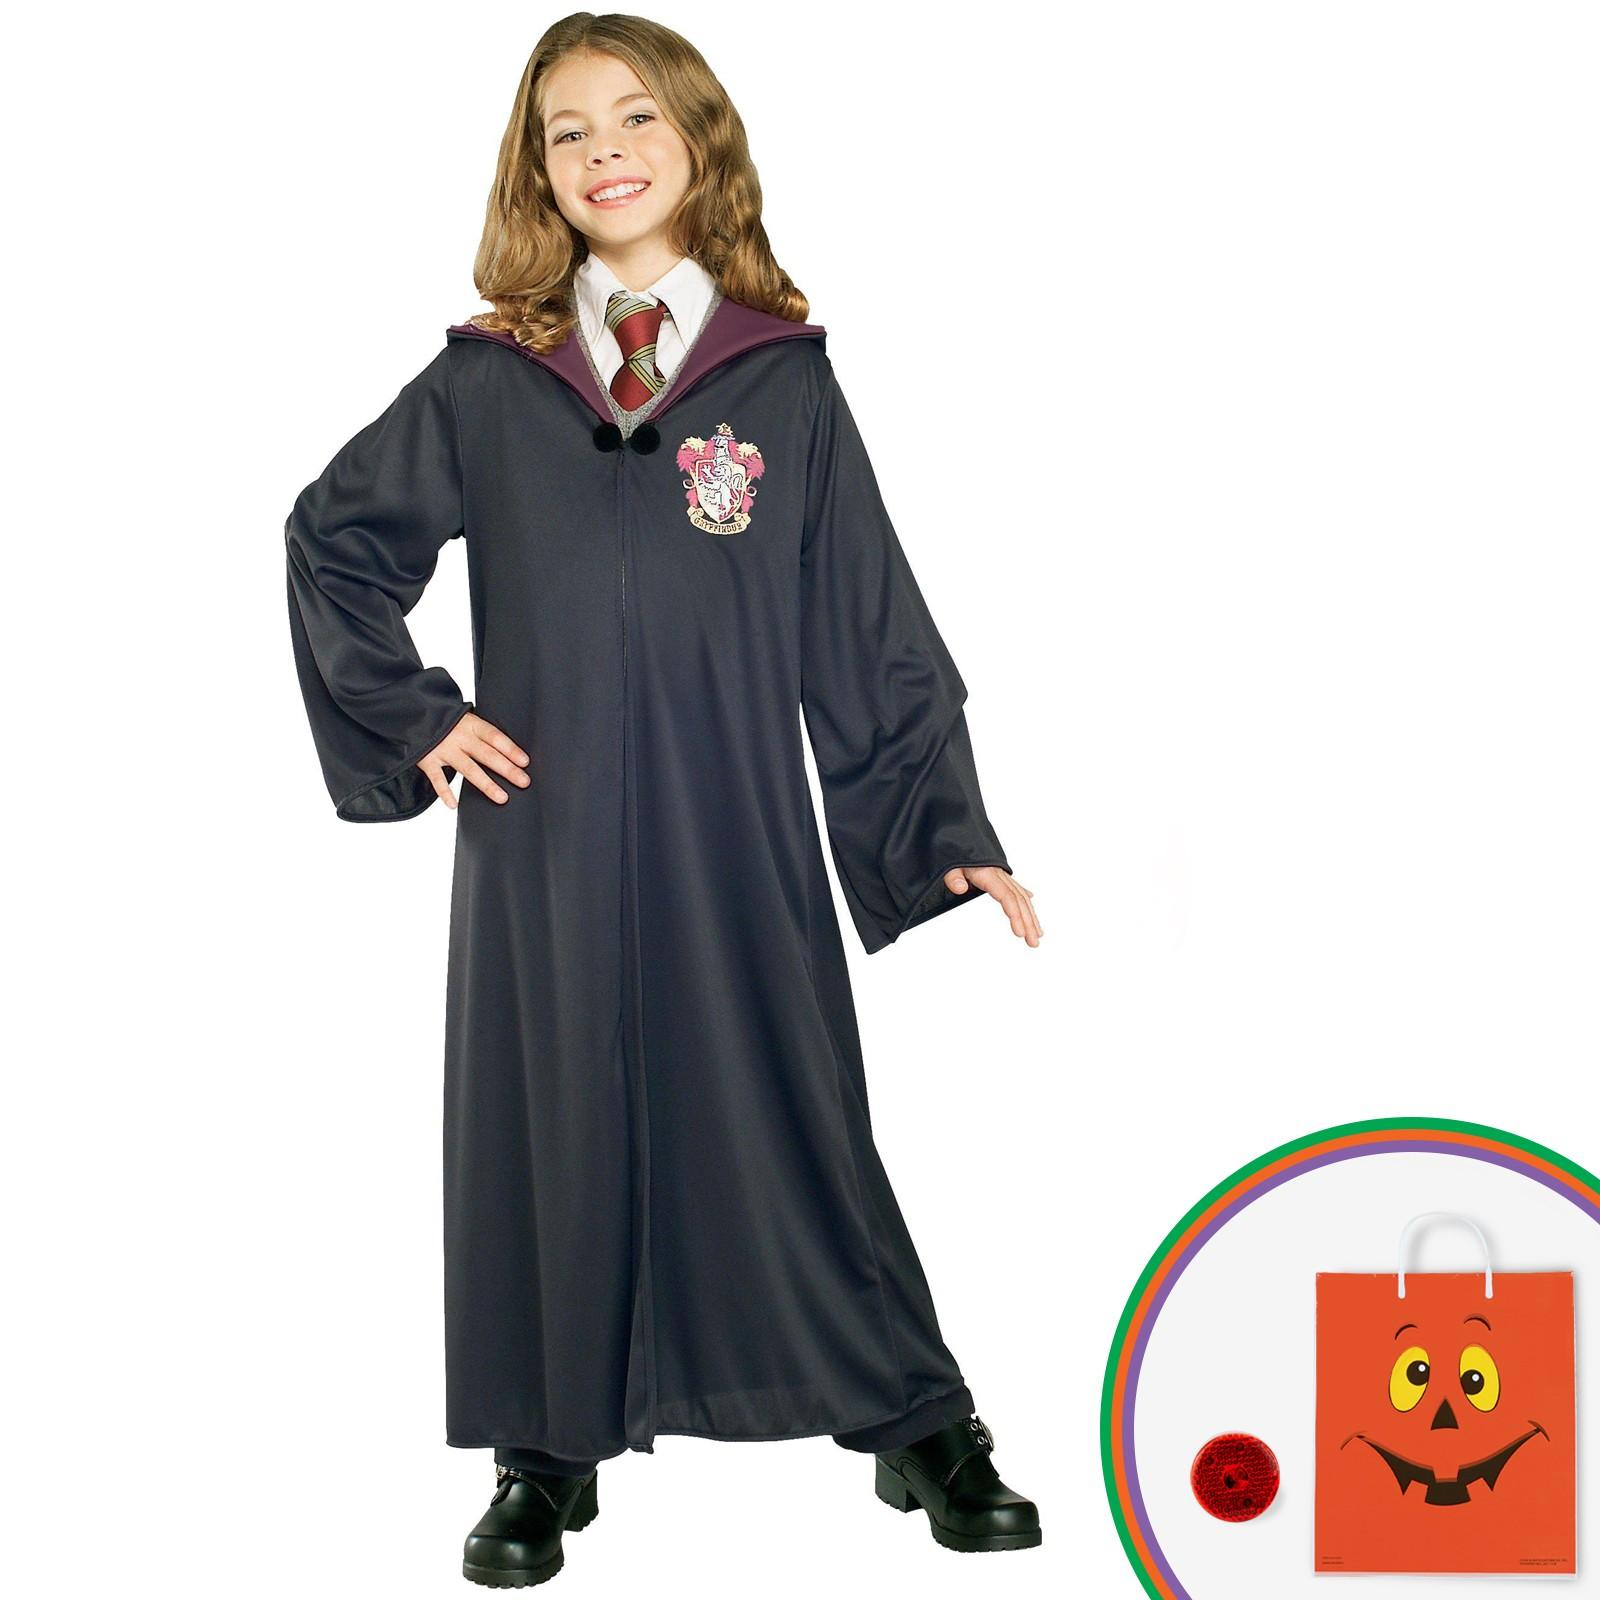 Harry Potter - Gryffindor Robe Child Costume Kit with Free Gift